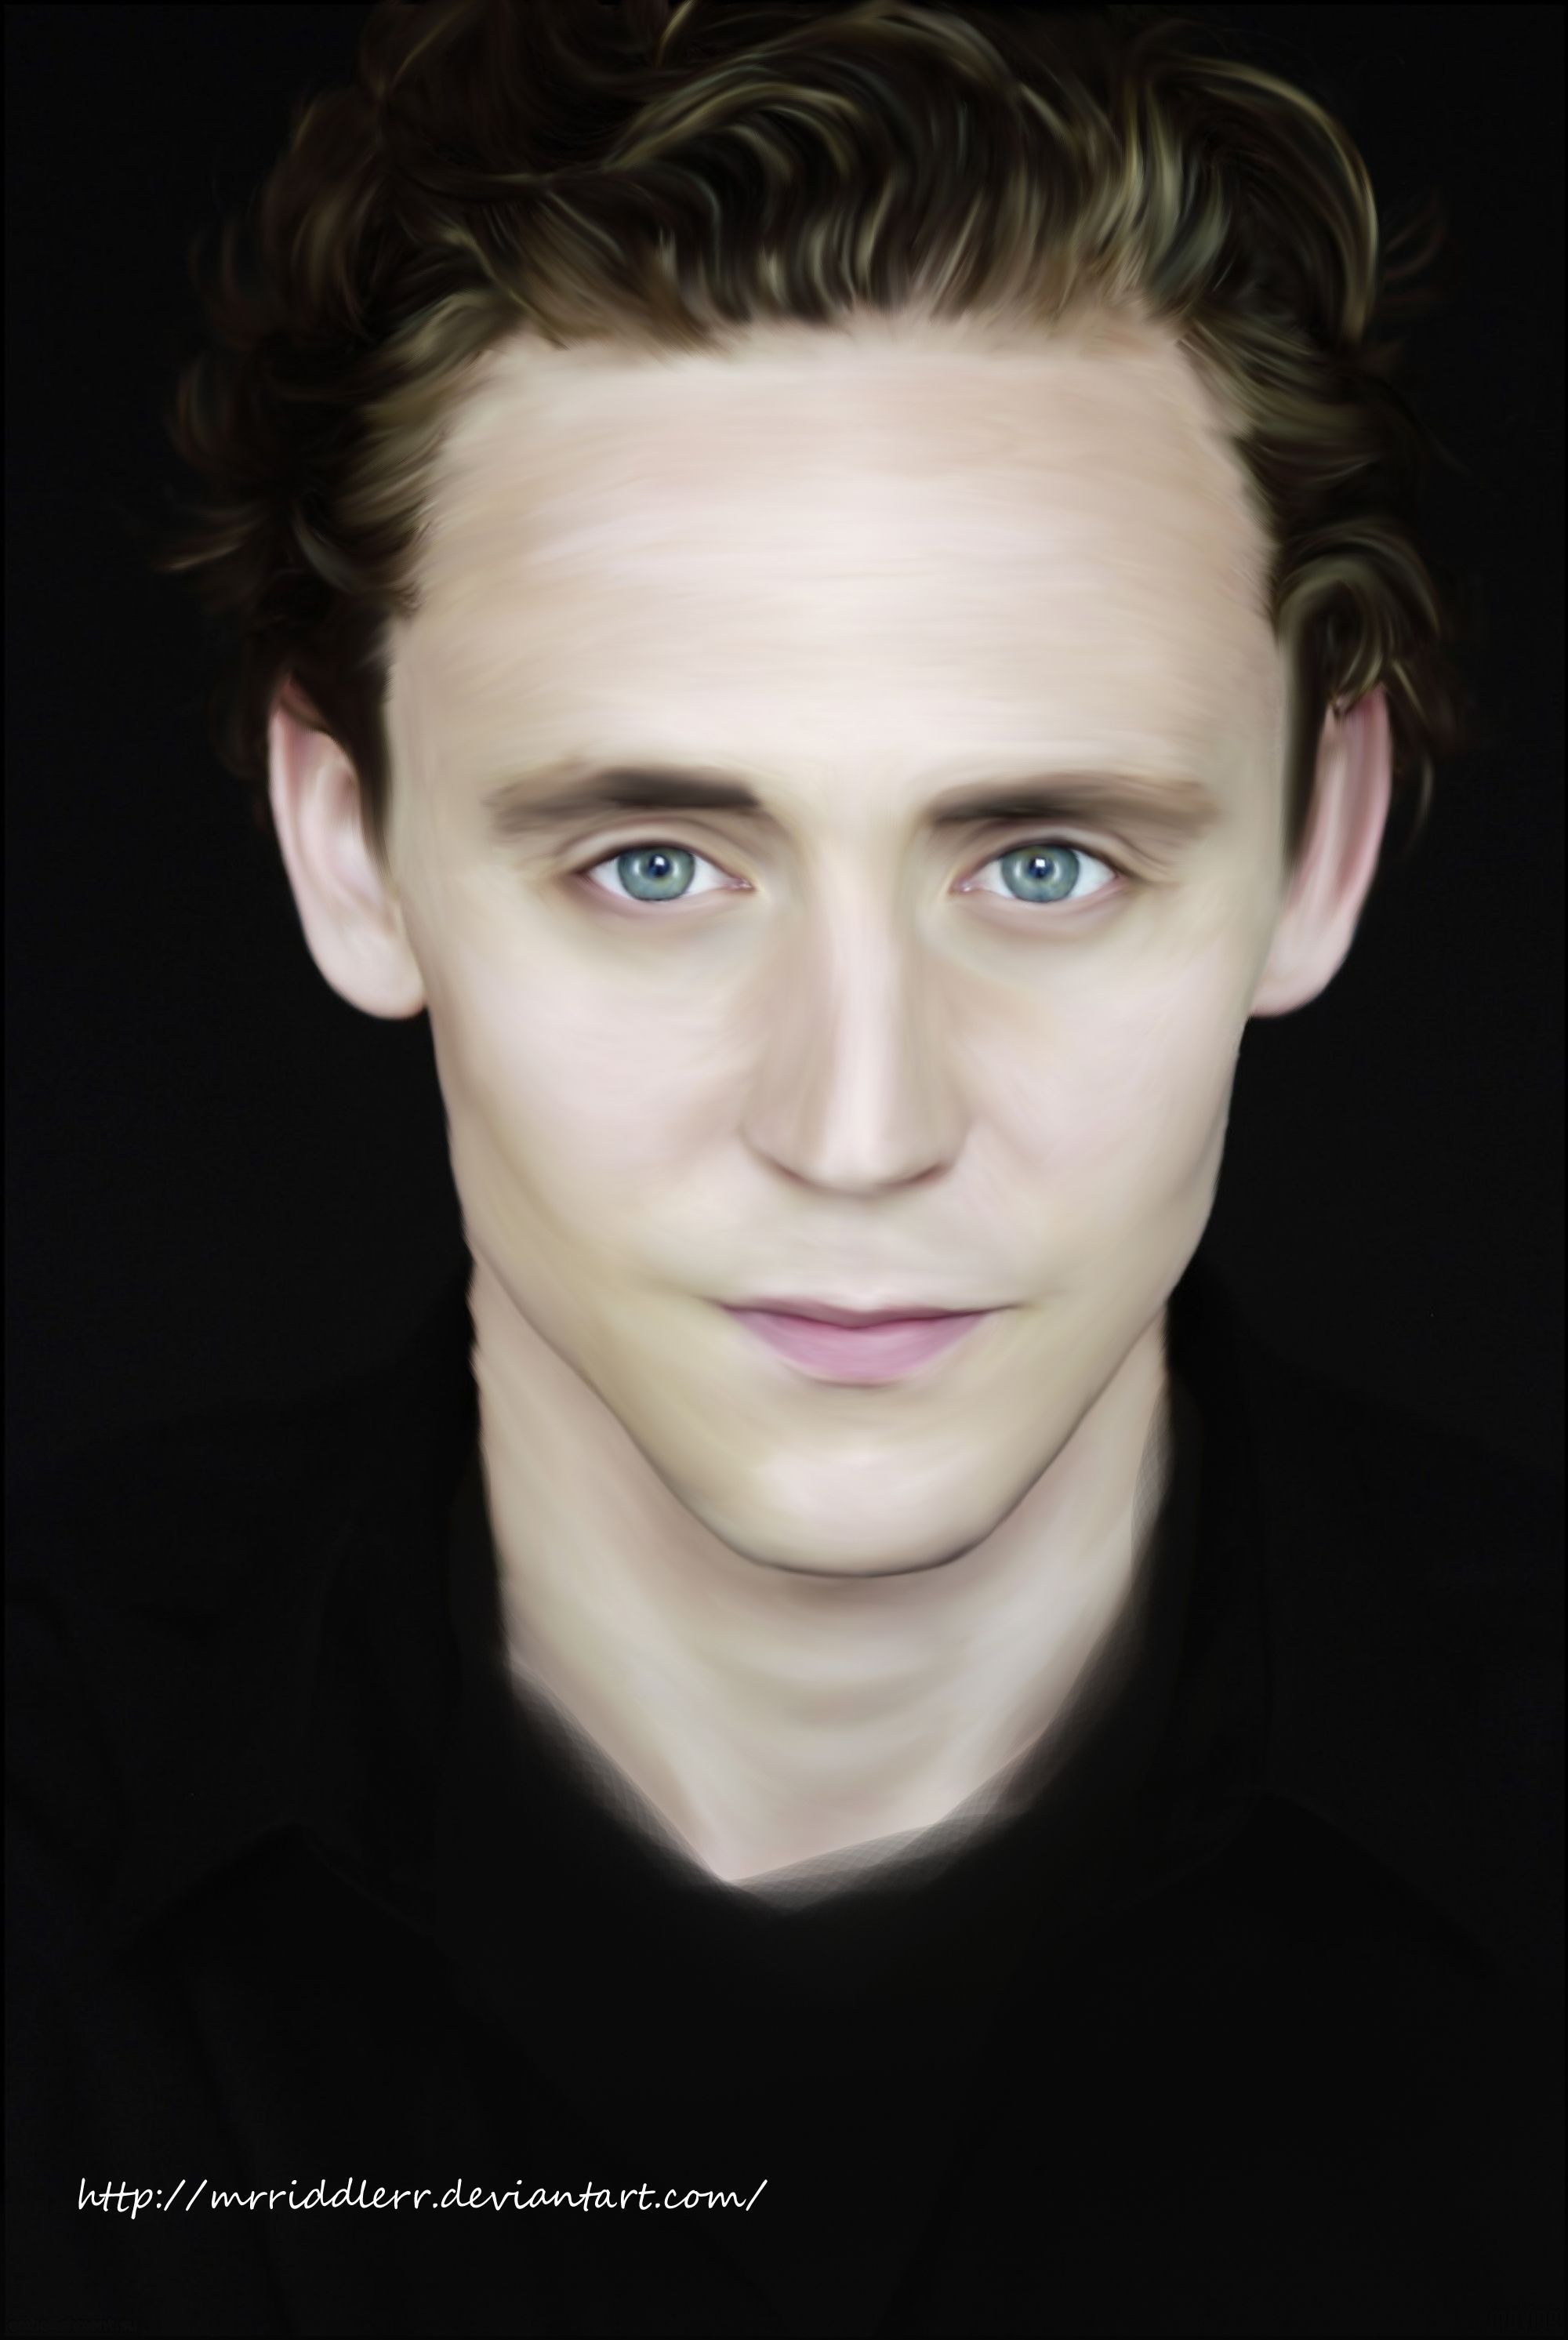 Tom Hiddleston-aka Loki god of mischief in the movie Thor - painting